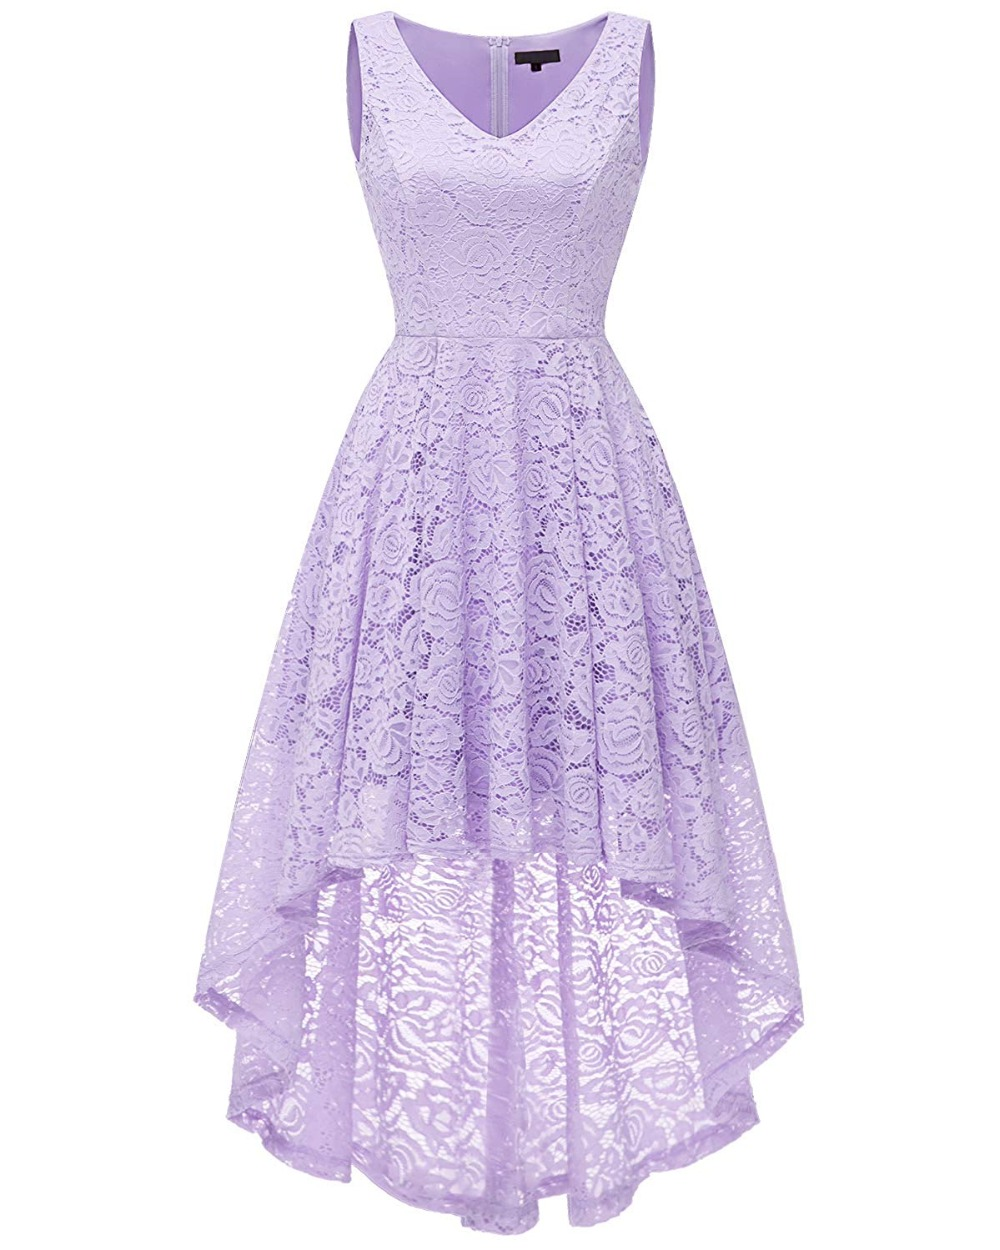 JaneVini Vintage Floral Lace High Low Prom   Dress   V-Neck Short Front Long Back   Bridesmaid     Dresses   Ankle Length Wedding Party Gown